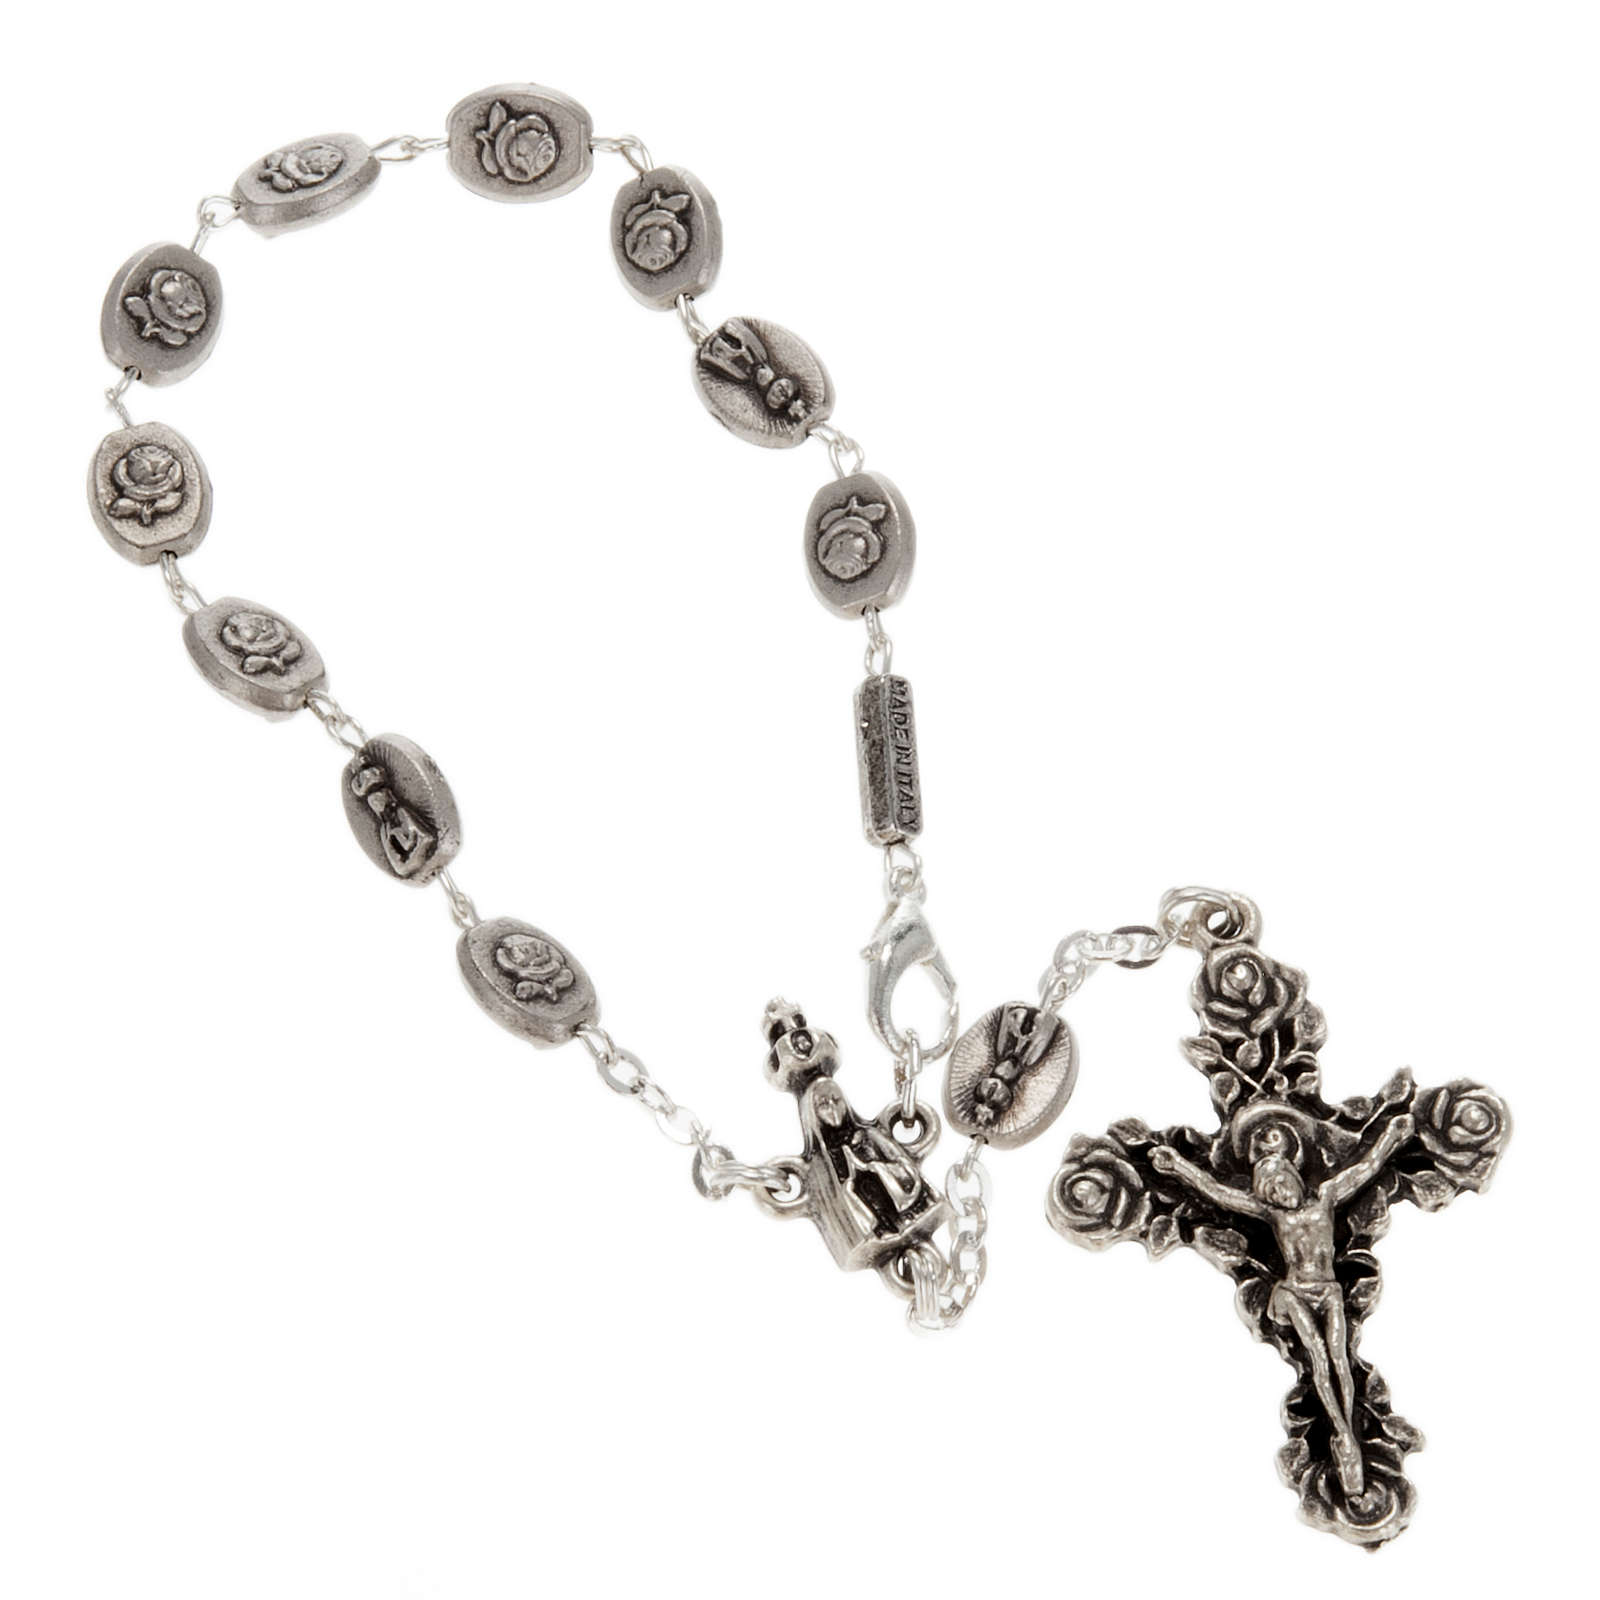 Ghirelli single-decade rosary, Our Lady of Fatima in brass, 6x8m 4